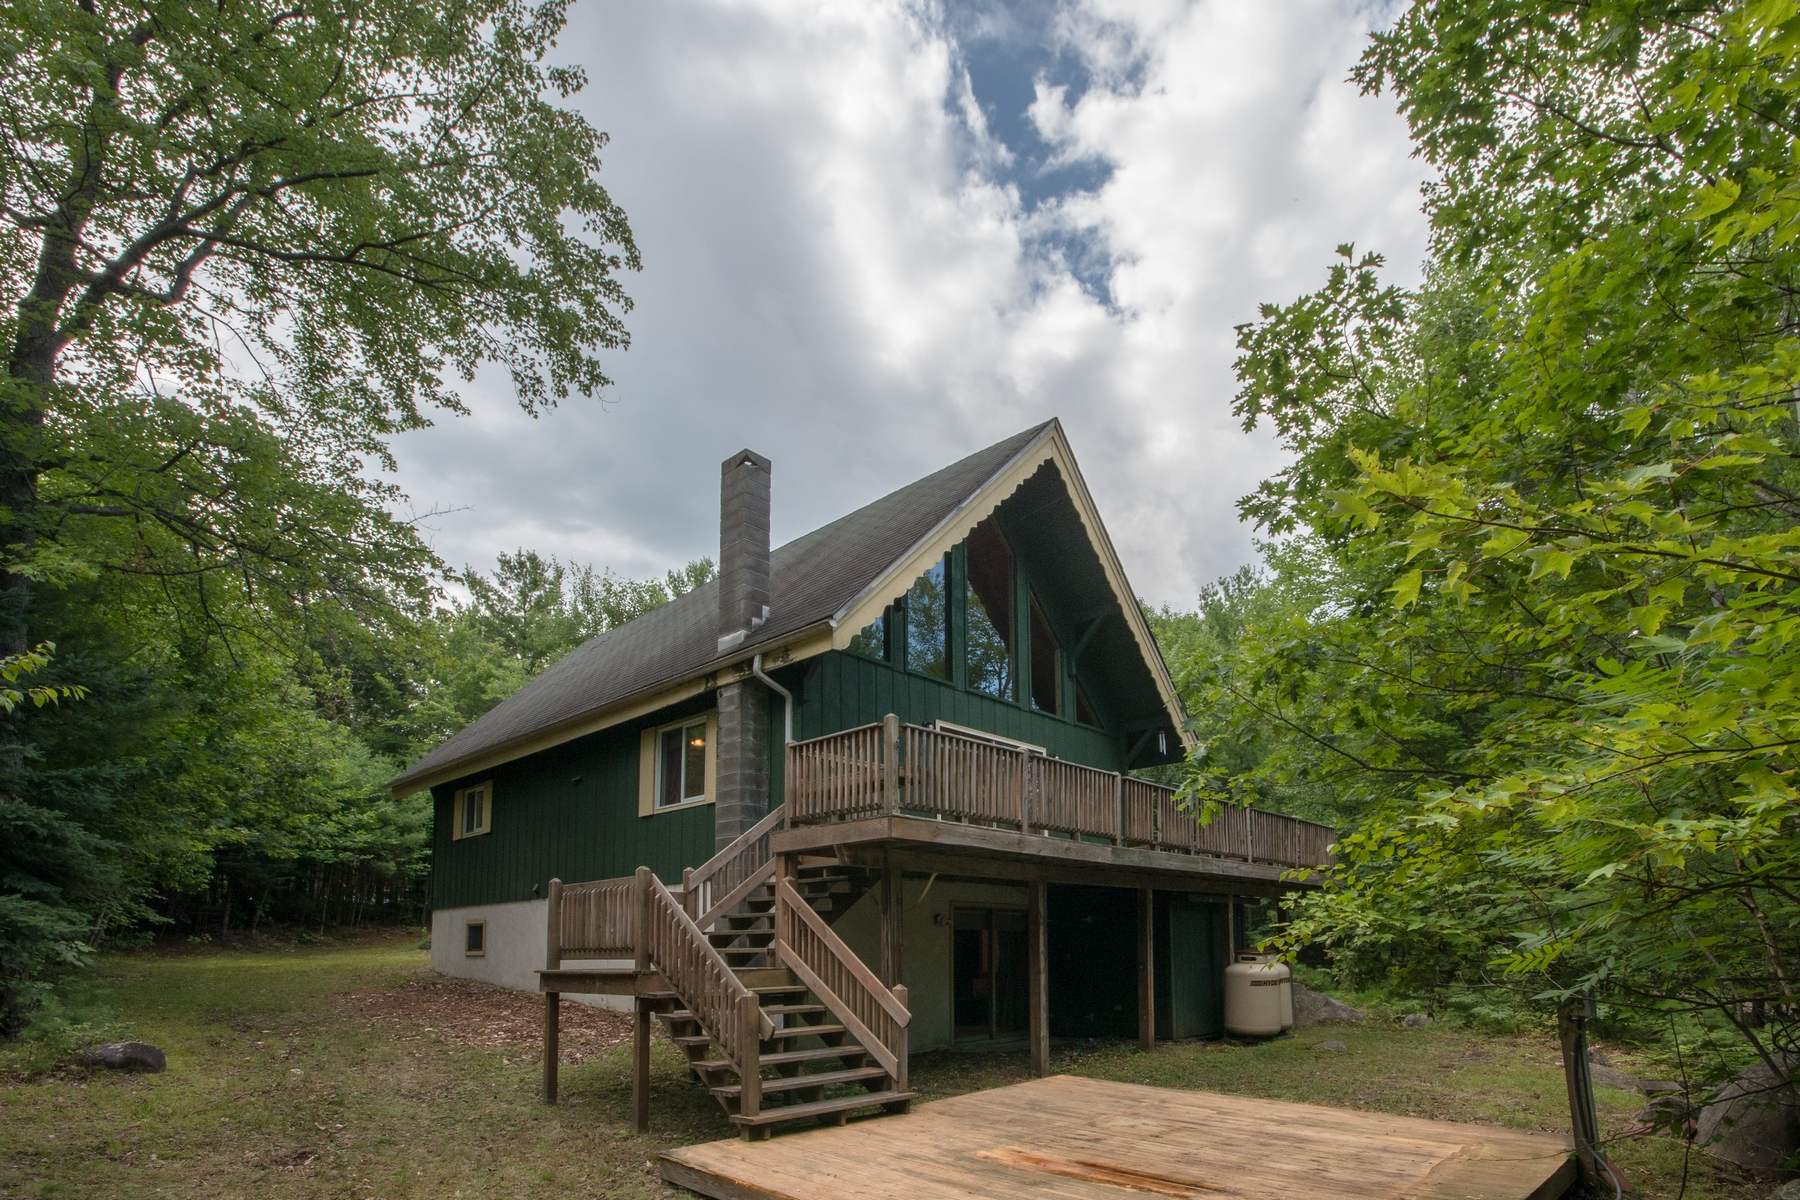 Property For Sale at Ski Chalet on Wooded Lot